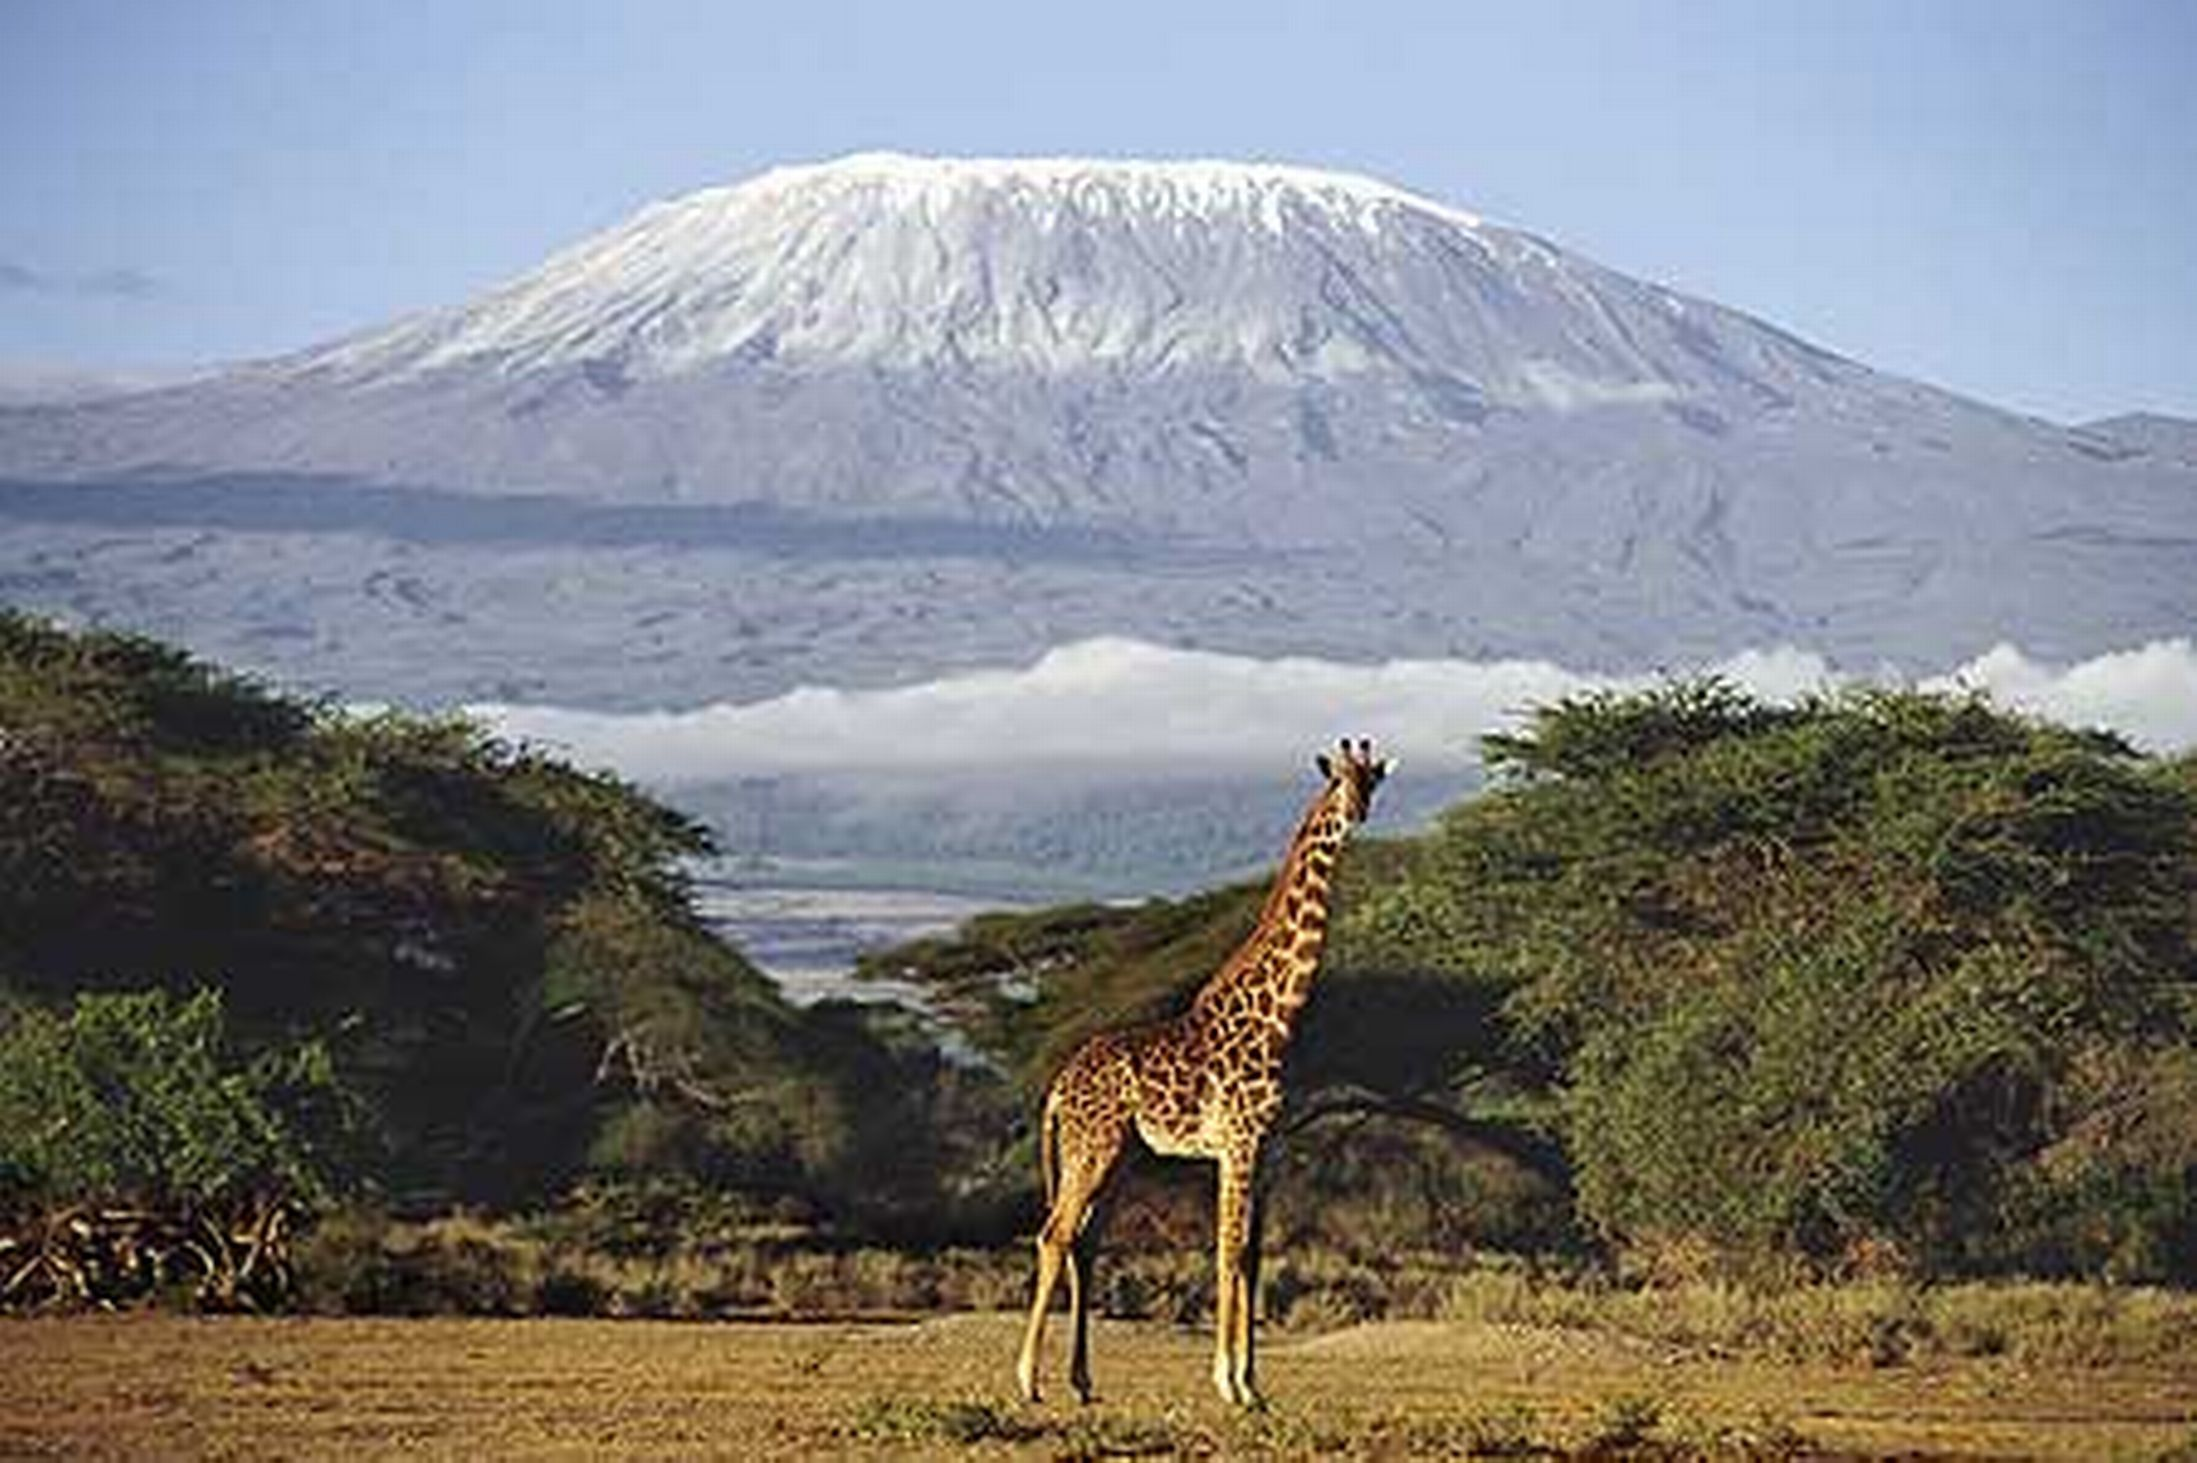 what continent is mount kilimanjaro in